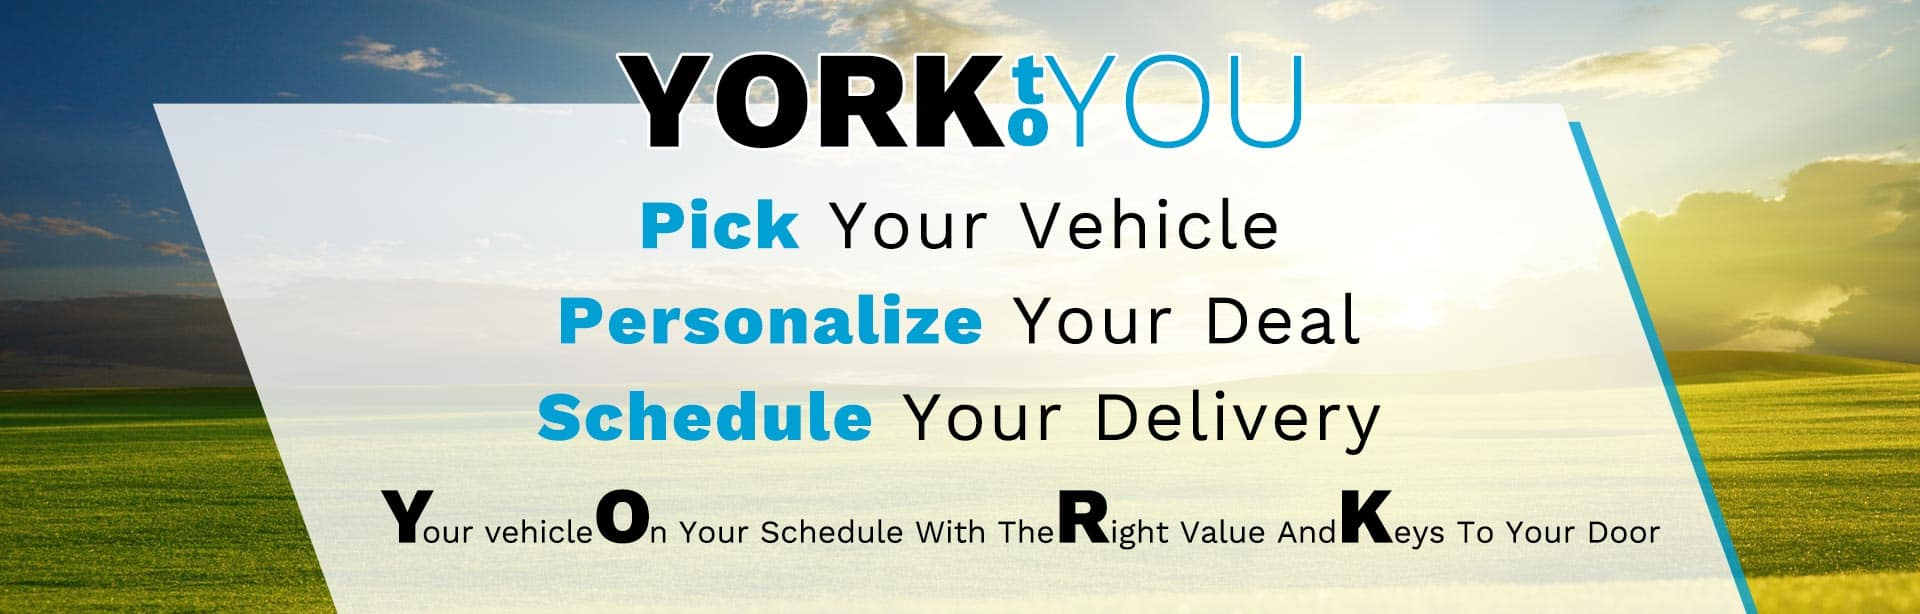 Pick your vehicle. Personalize your deal. Schedule your delivery.